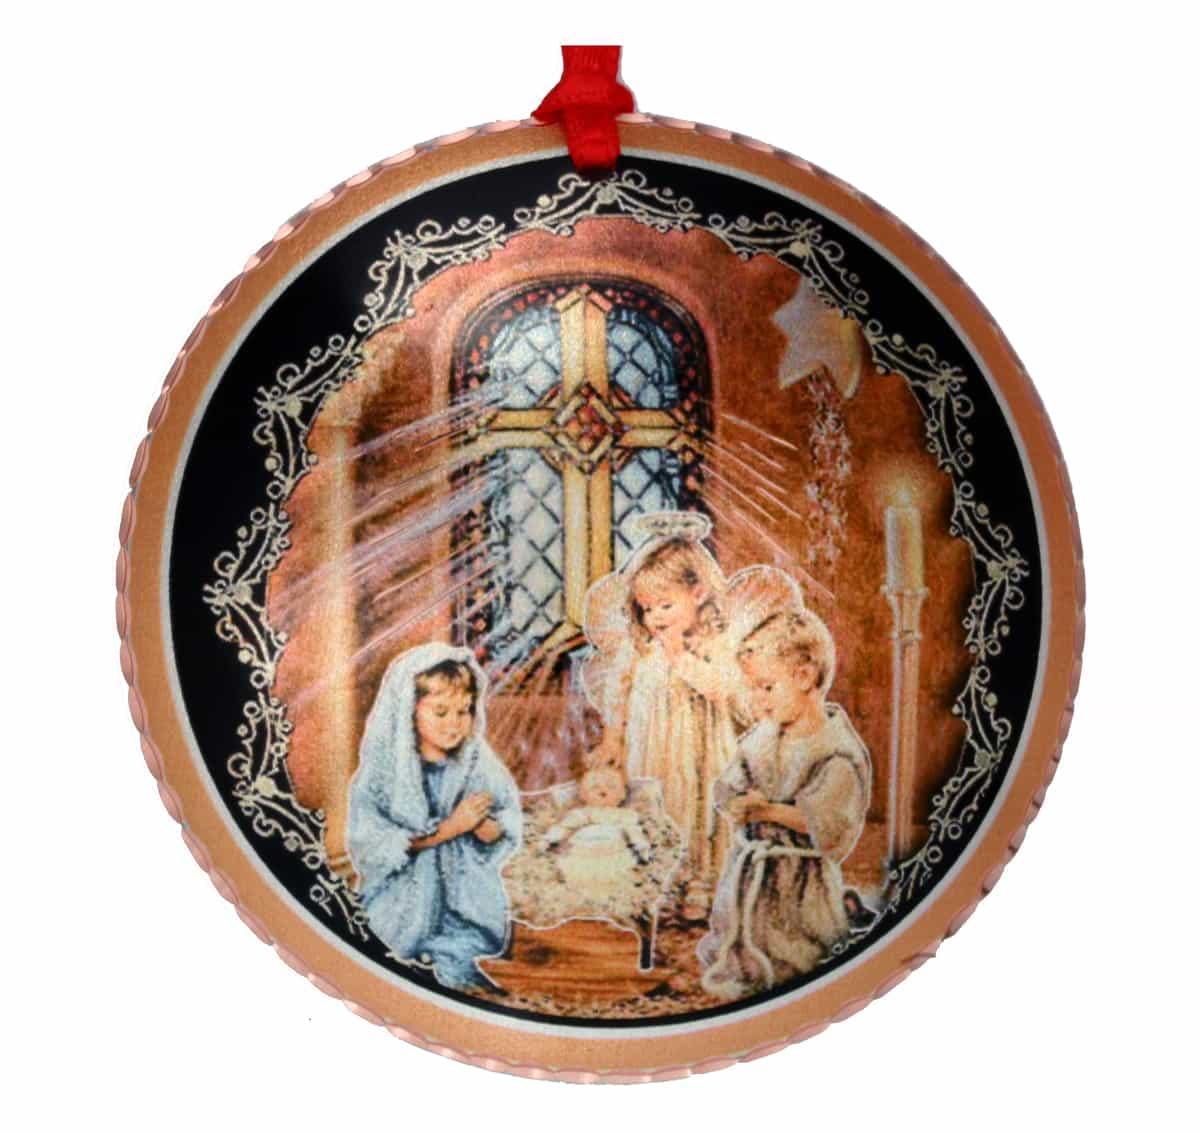 Wholesale Handmade Copper Christmas Ornament Created in Colorful church manger scene